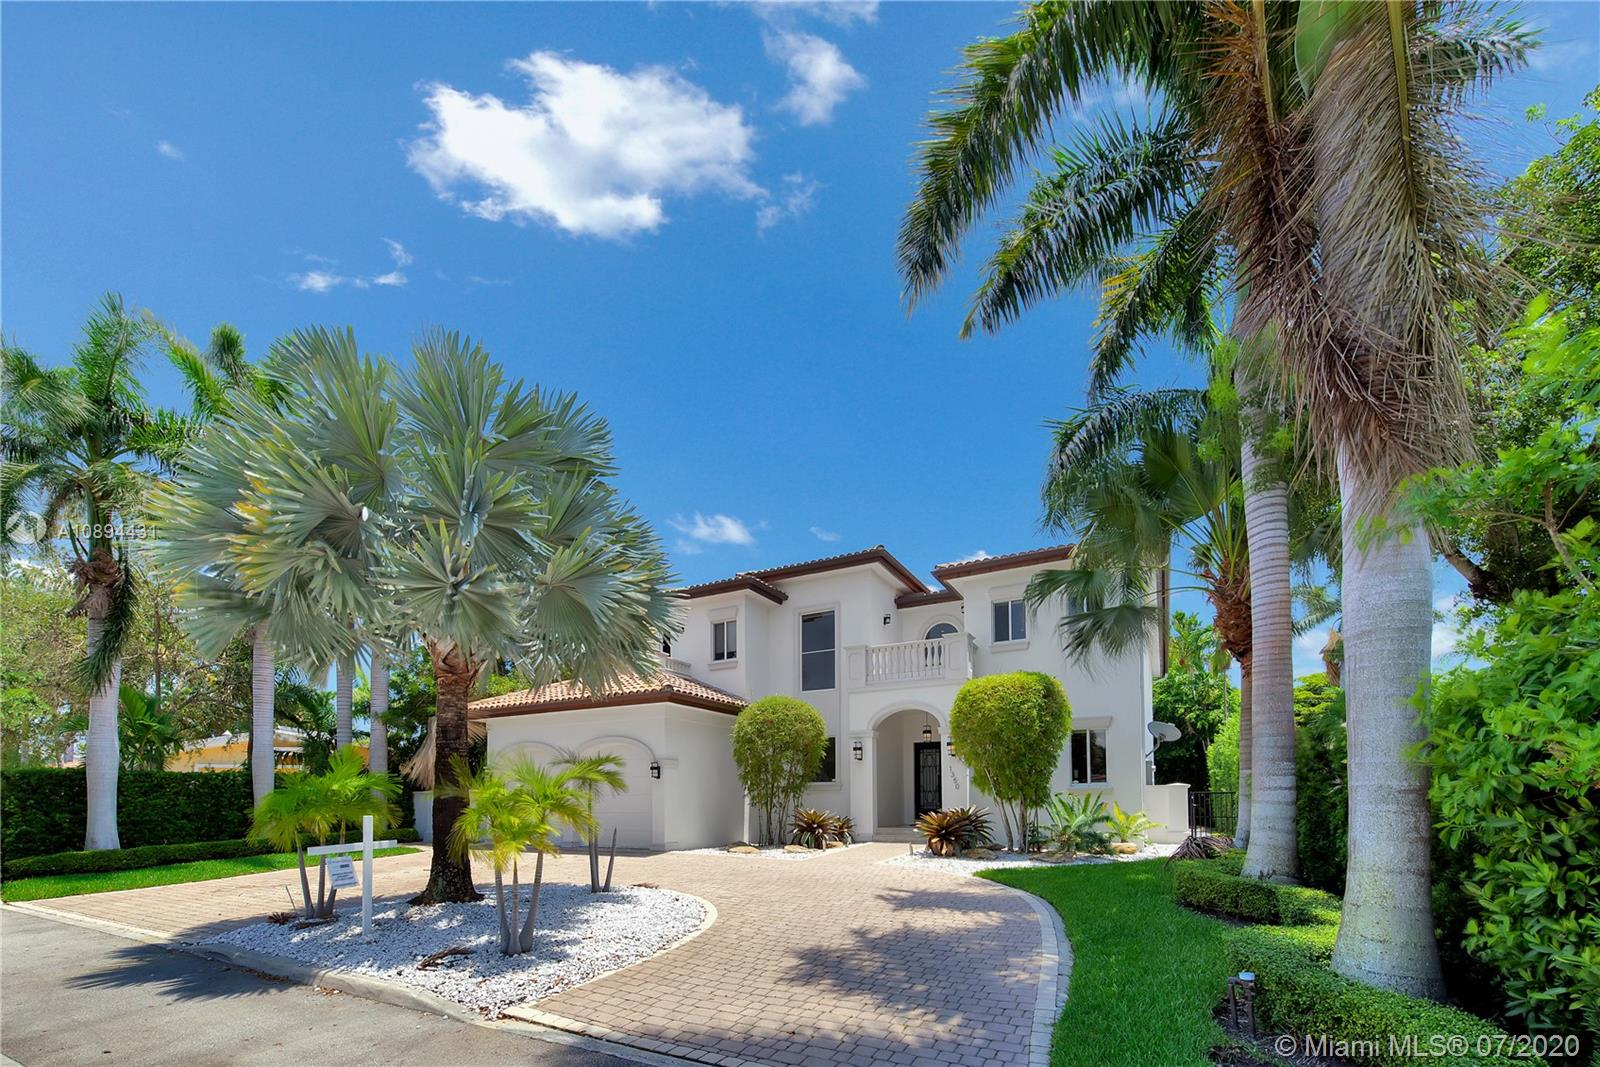 Stunning Modern Mediterranean residence perfectly located on prestigious Bay Harbor Islands. Please click on 3D tour to see for yourself. A Magnificent footprint w 4bd up/2 down,each w ensuite bath. Abundance of natural light thruout all living & entertaining spaces. New eat-in kitchen w adjacent family rm (Bosch range & ovens/Thermador refrigr/freezer) large pantry. Master suite w terrace, 2 enormous walk-in closets/luxurious bath.Expansive covered patio w summer kitchen & wood burning pizza oven made by world renowned Artist,heated pool w waterfall & private patio w mature trees.Elegant formal dining,dramatic living rm w double volume ceilings, 2car gar+storage, all impact window/doors, sep laundry rm. A+rated school, houses of worship, beaches, Bal Harbour Shops right down the street!